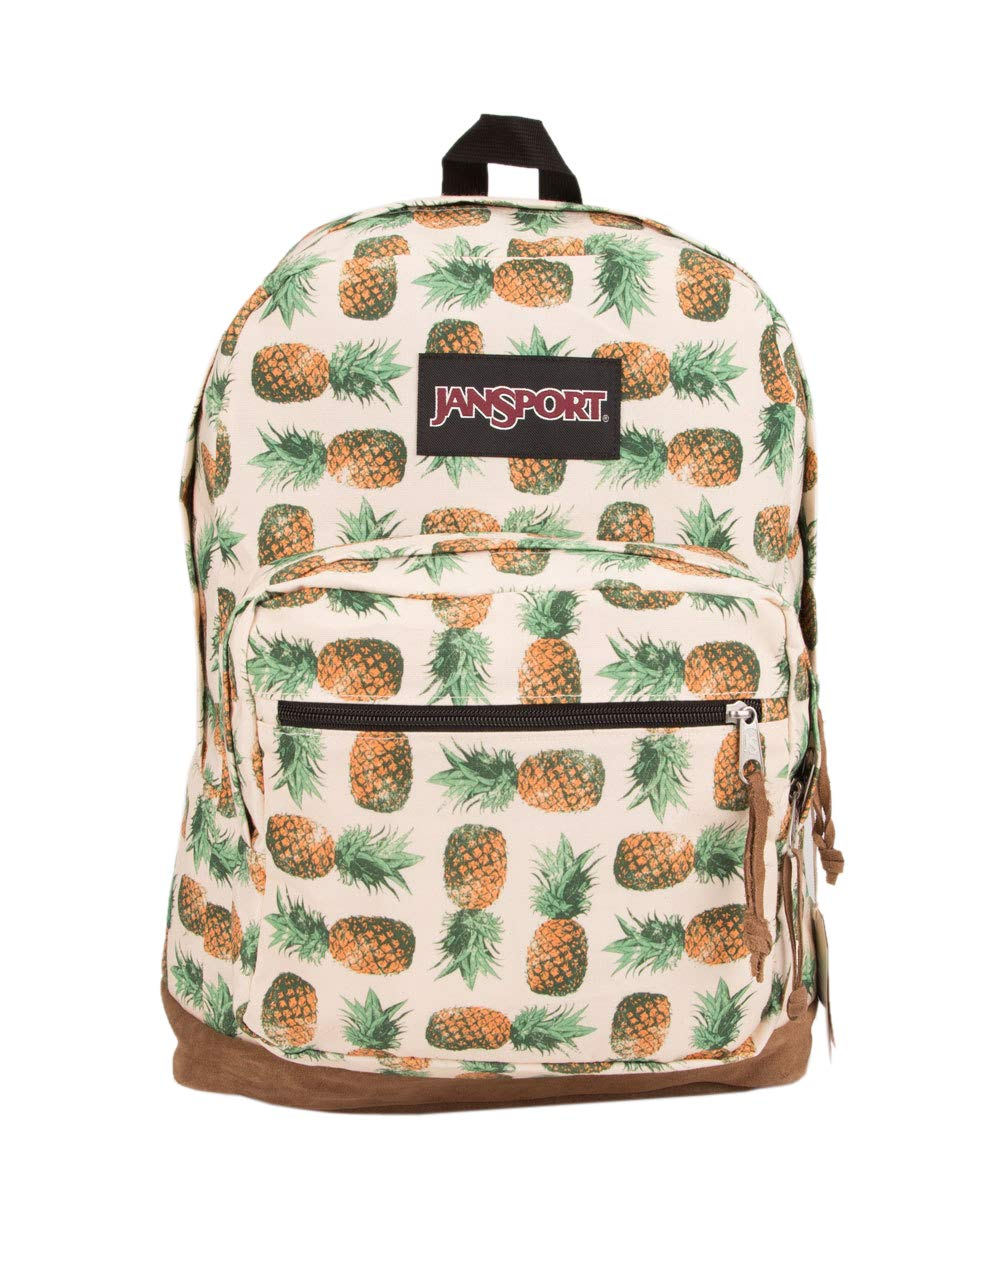 JANSPORT Right Pack Pineapple Backpack, Assorted by JanSport